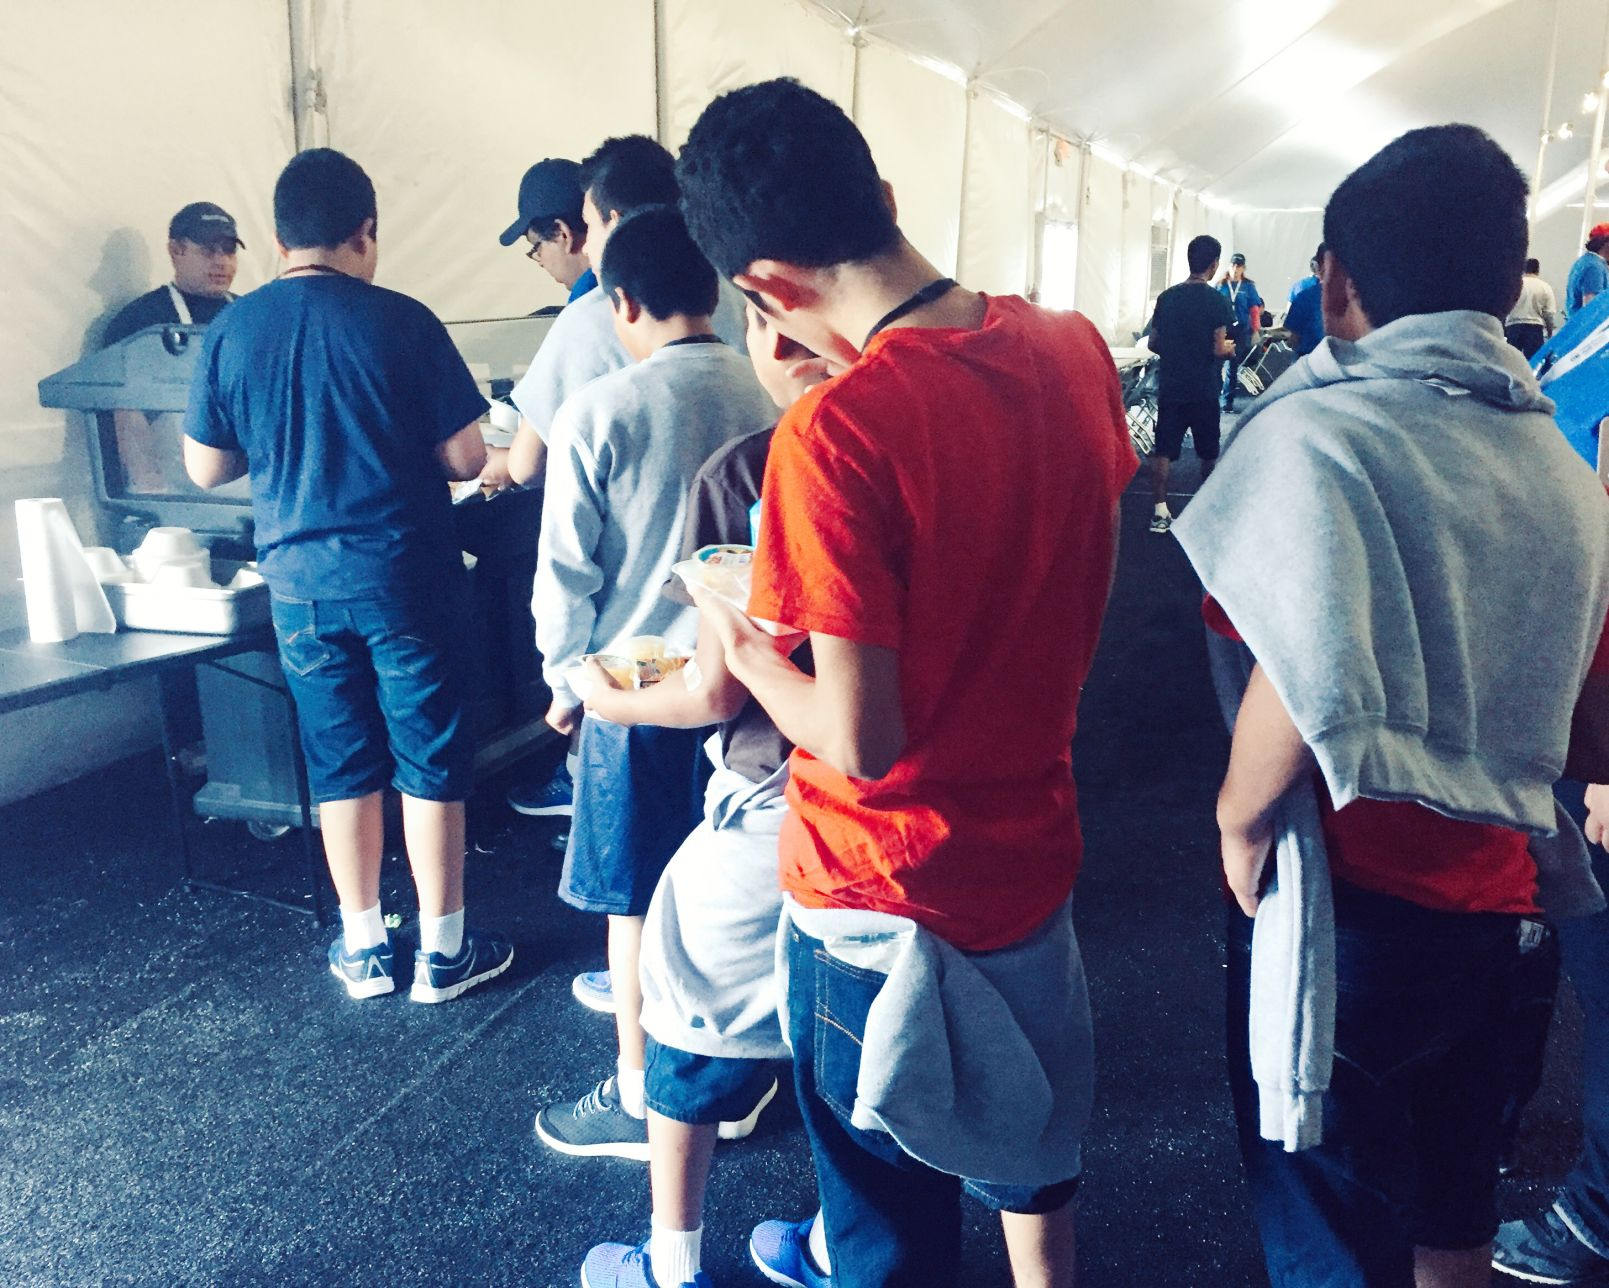 Photos: Inside the Homestead Temporary Shelter for Unaccompanied Minors